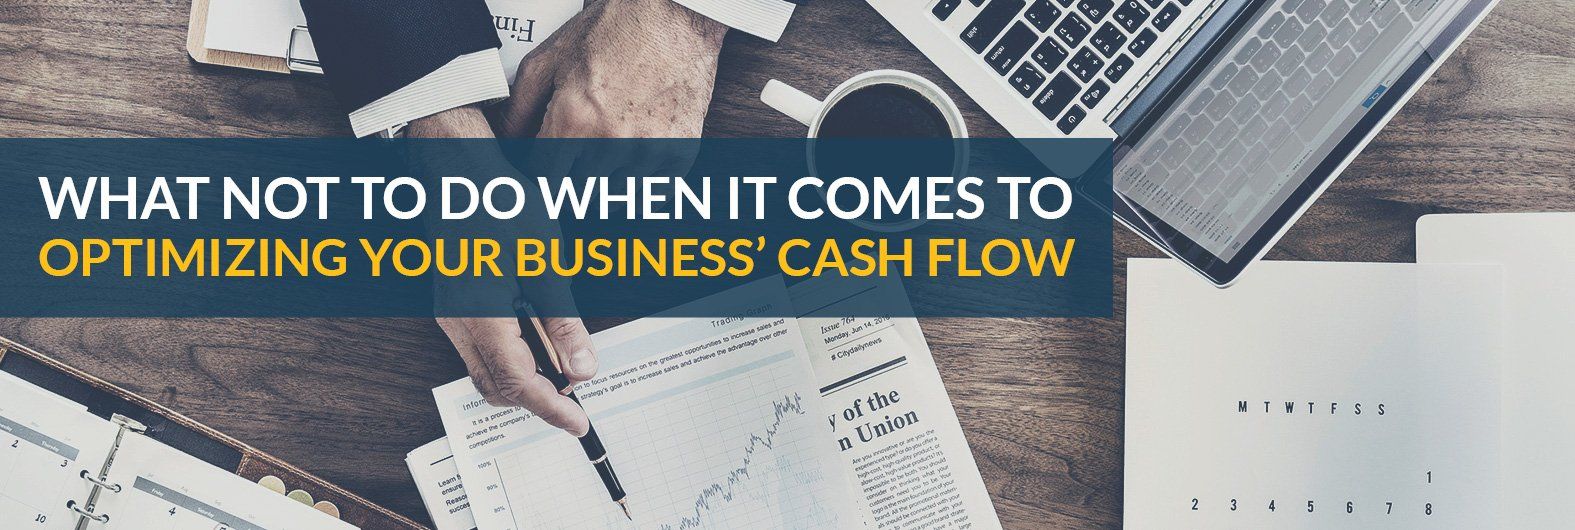 What NOT to do when it comes to optimizing your business' cash flow